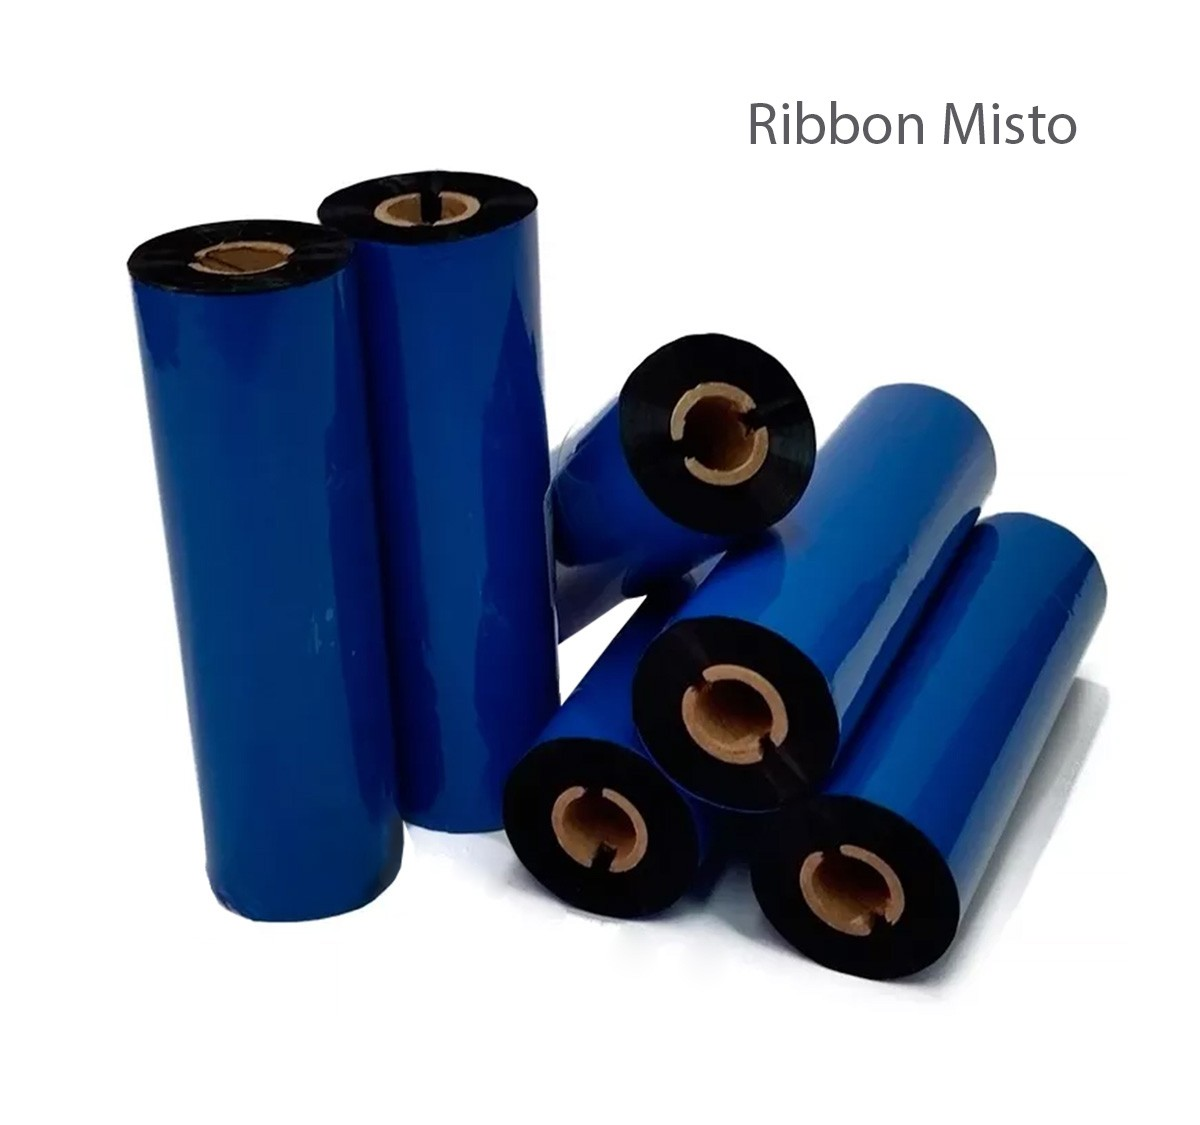 Ribbon Misto 110mm de largura - Armor